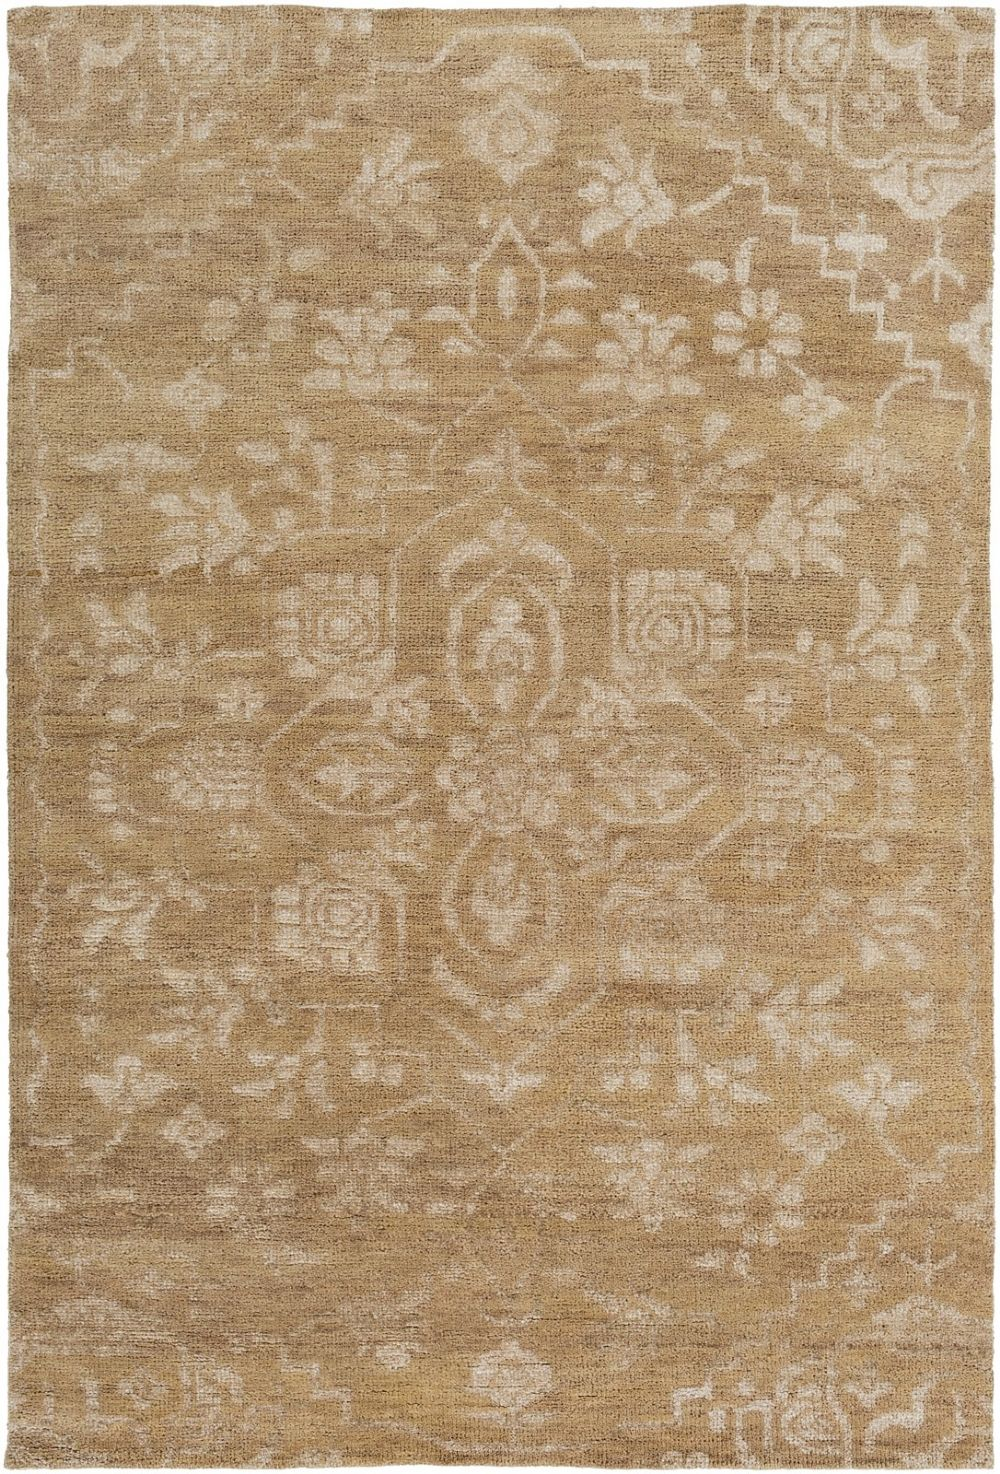 surya kinnara traditional area rug collection